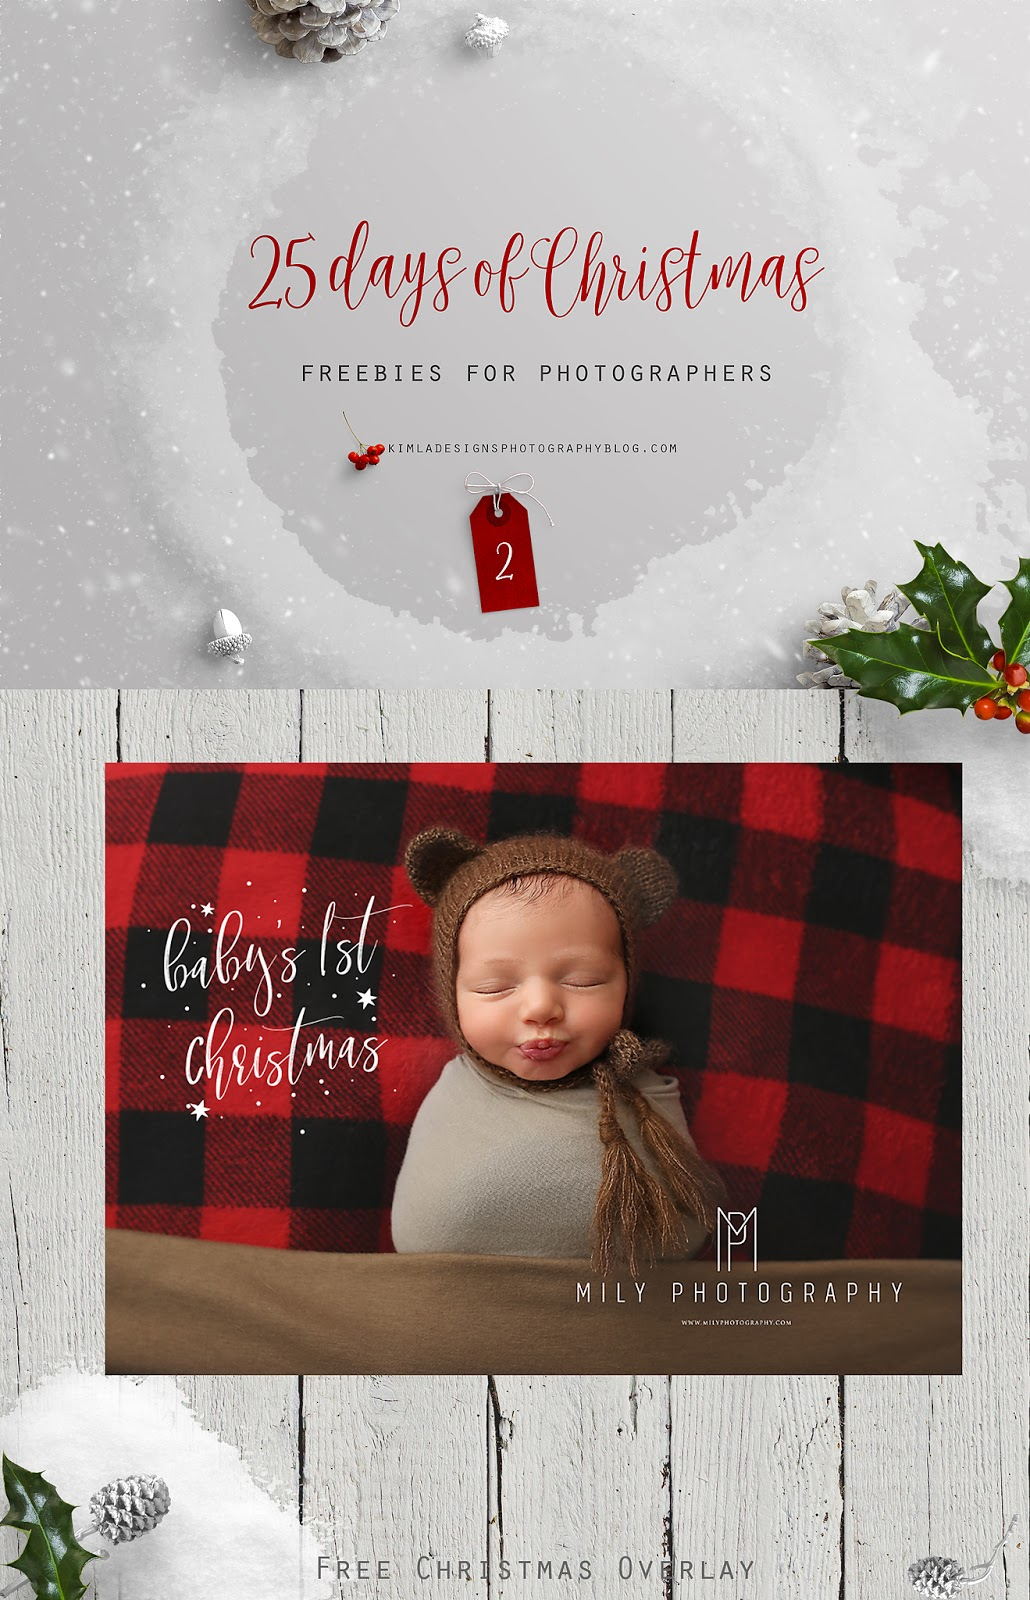 Day 2 of 25 Days of Christmas Freebies for Photographers